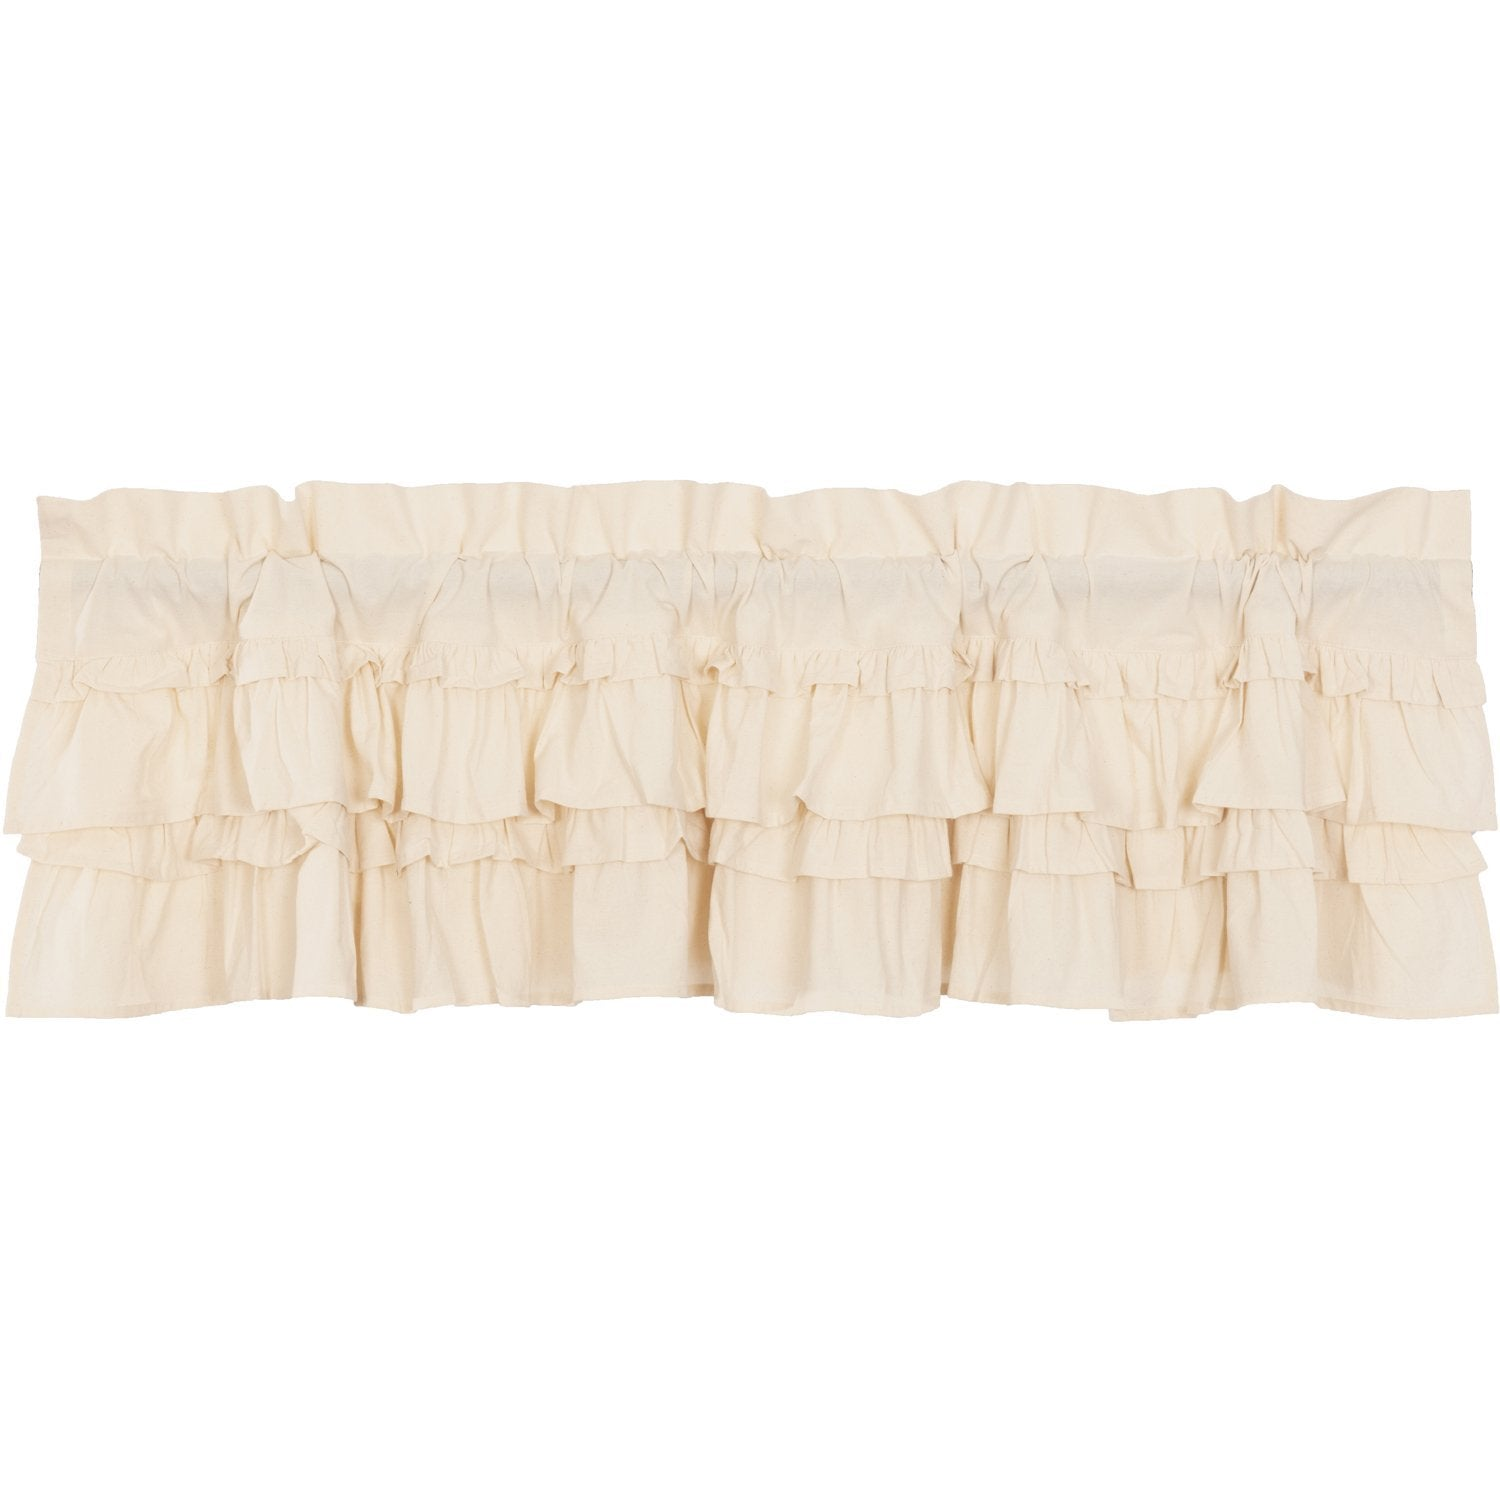 Muslin Ruffled Unbleached Natural Valance.